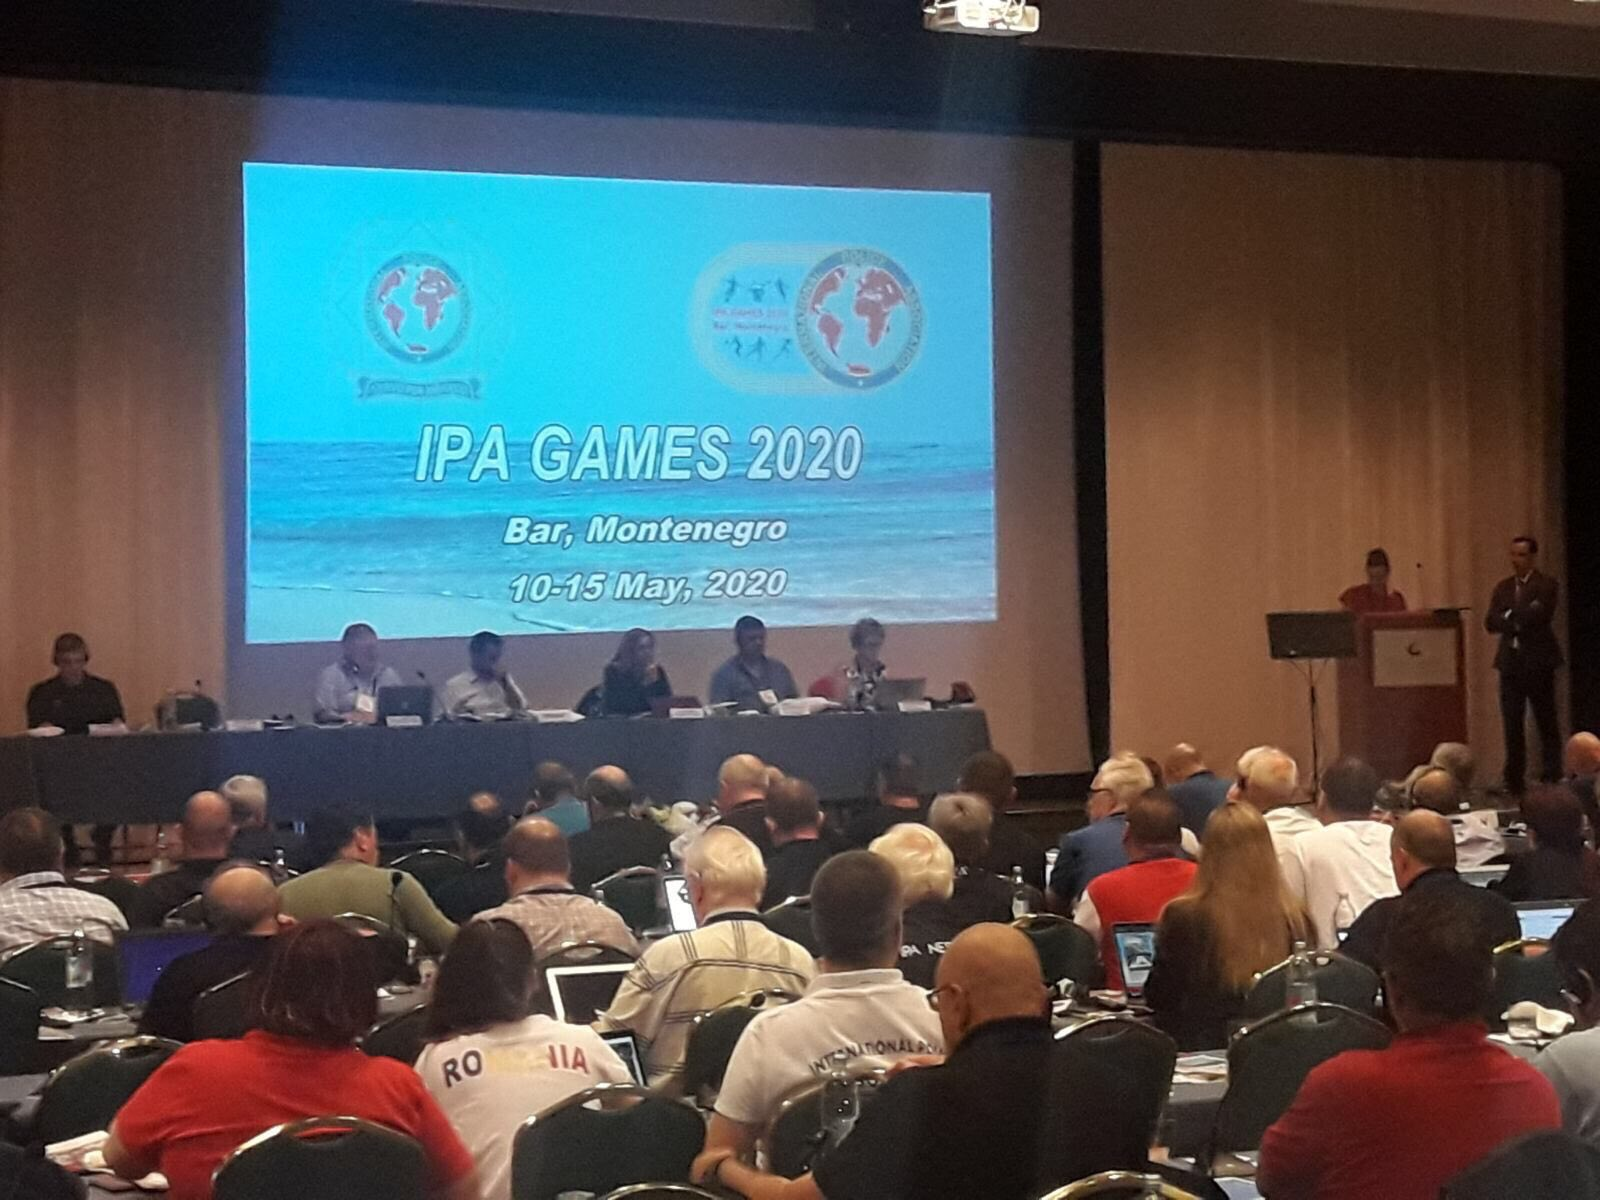 PROMOCIJA IPA GAMES 2020 NA 64. IPA WORLD CONGRESS – HRVATSKA